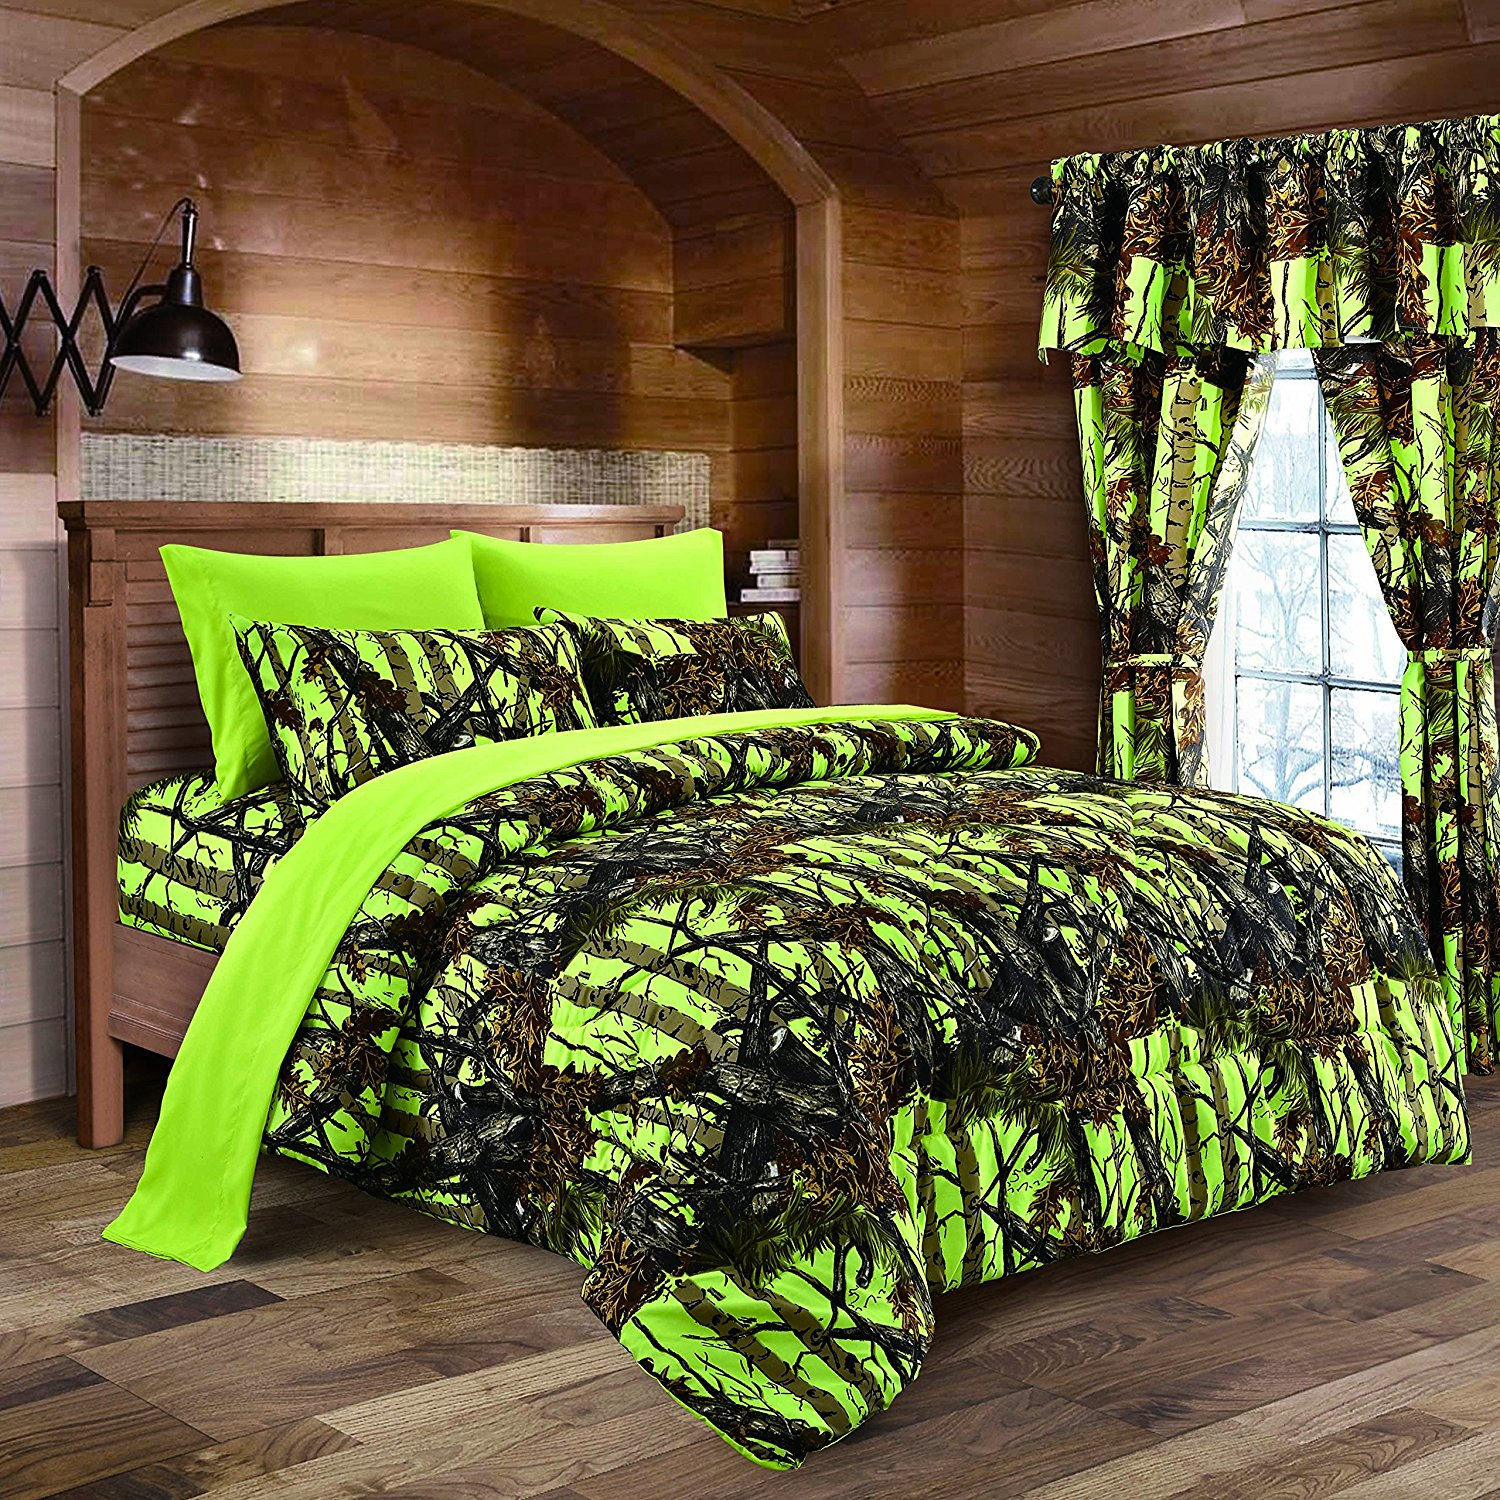 Regal Comfort 8pc Full Size Woods Lime Green Camouflage Premium Comforter, Sheet, Pillowcases, and Bed Skirt Set Camo Bedding Set For Hunters Cabin or Rustic Lodge Teens Boys and Girls